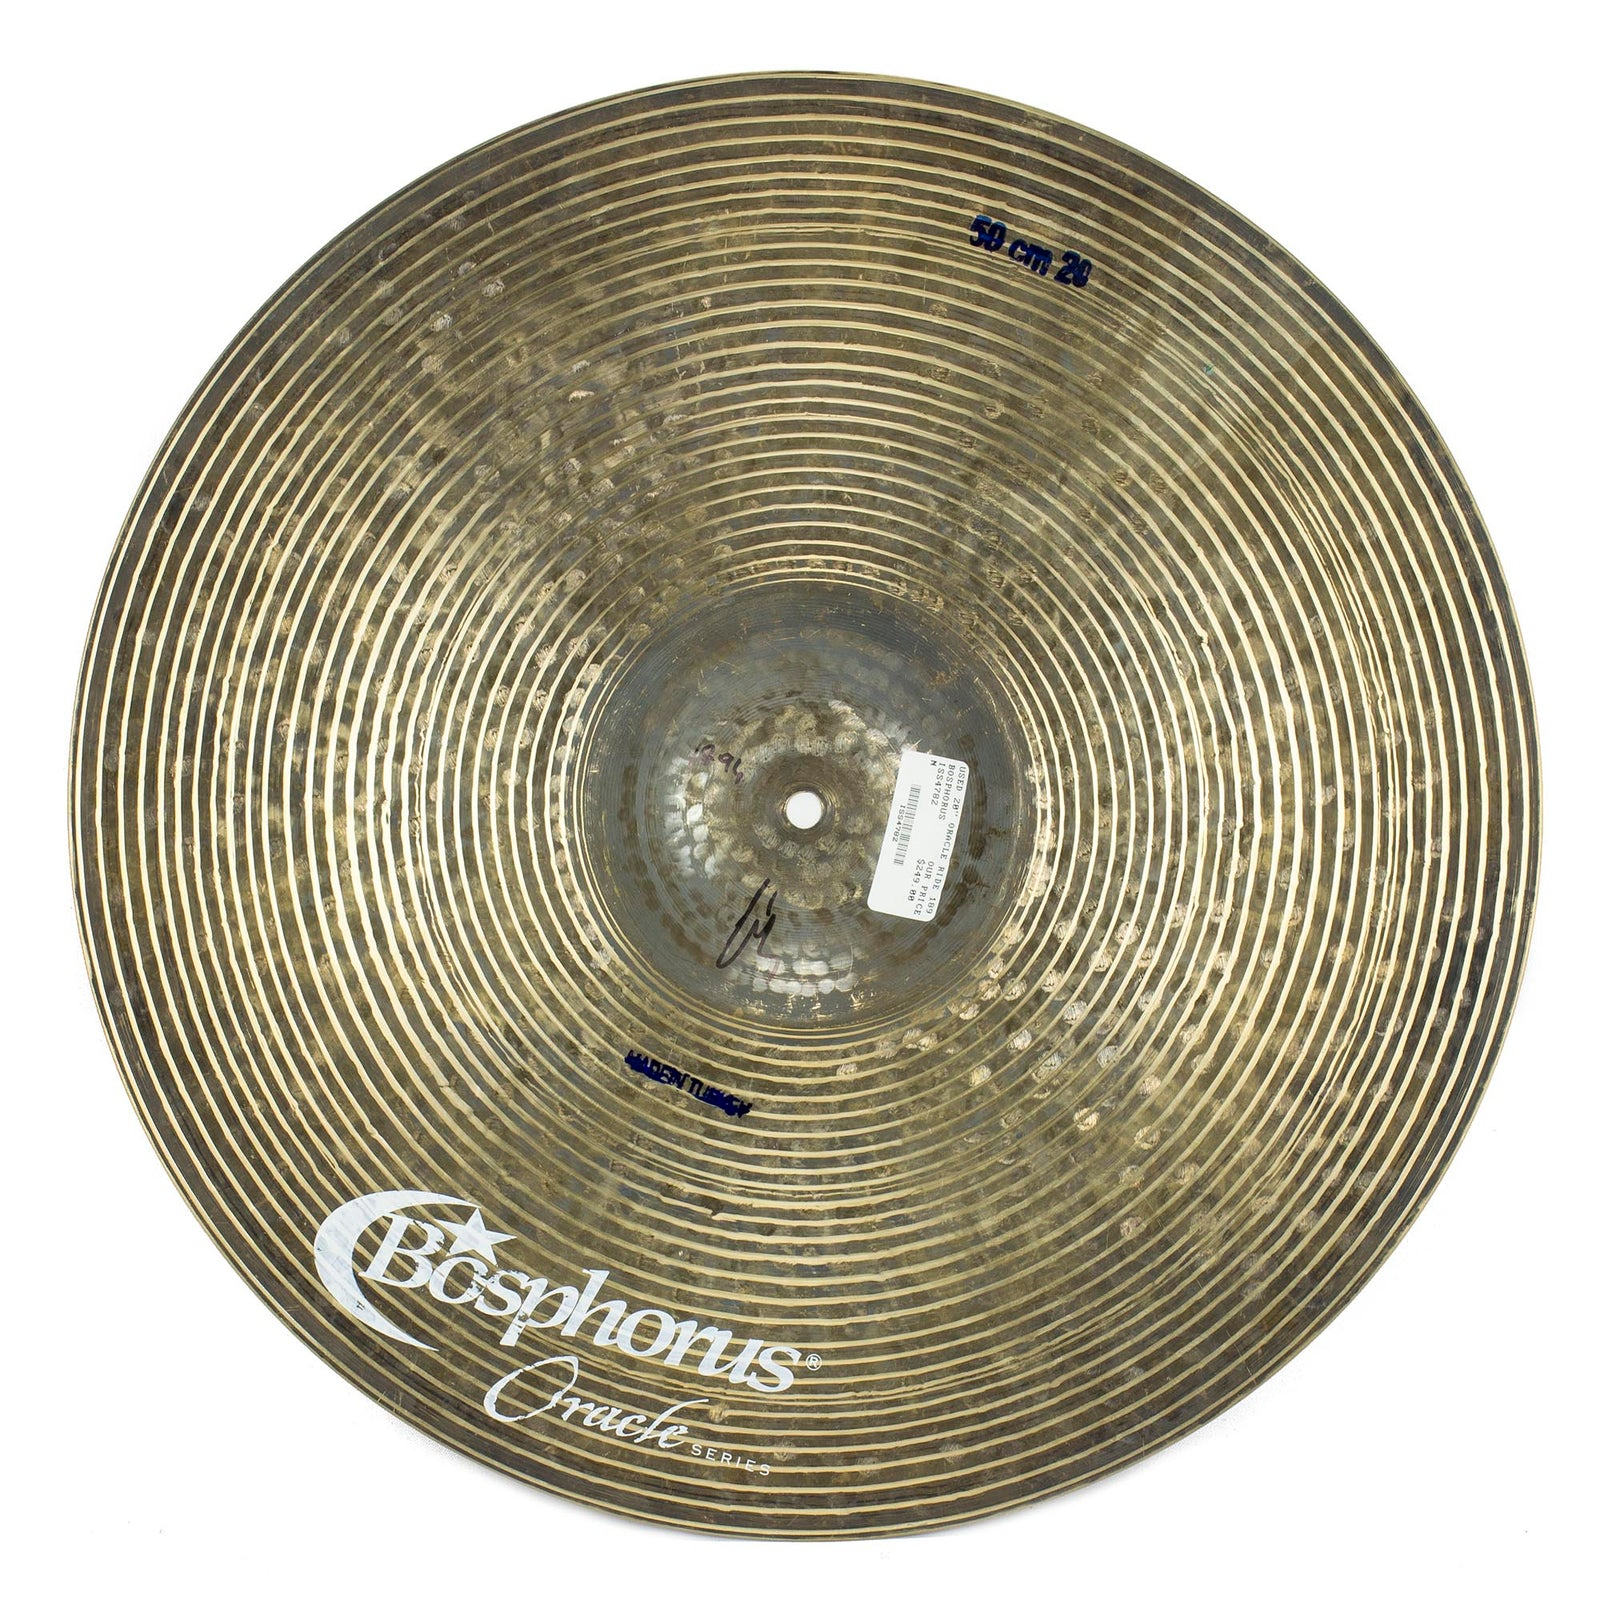 "Bosphorus 20"" Oracle Ride 1894G - Used"